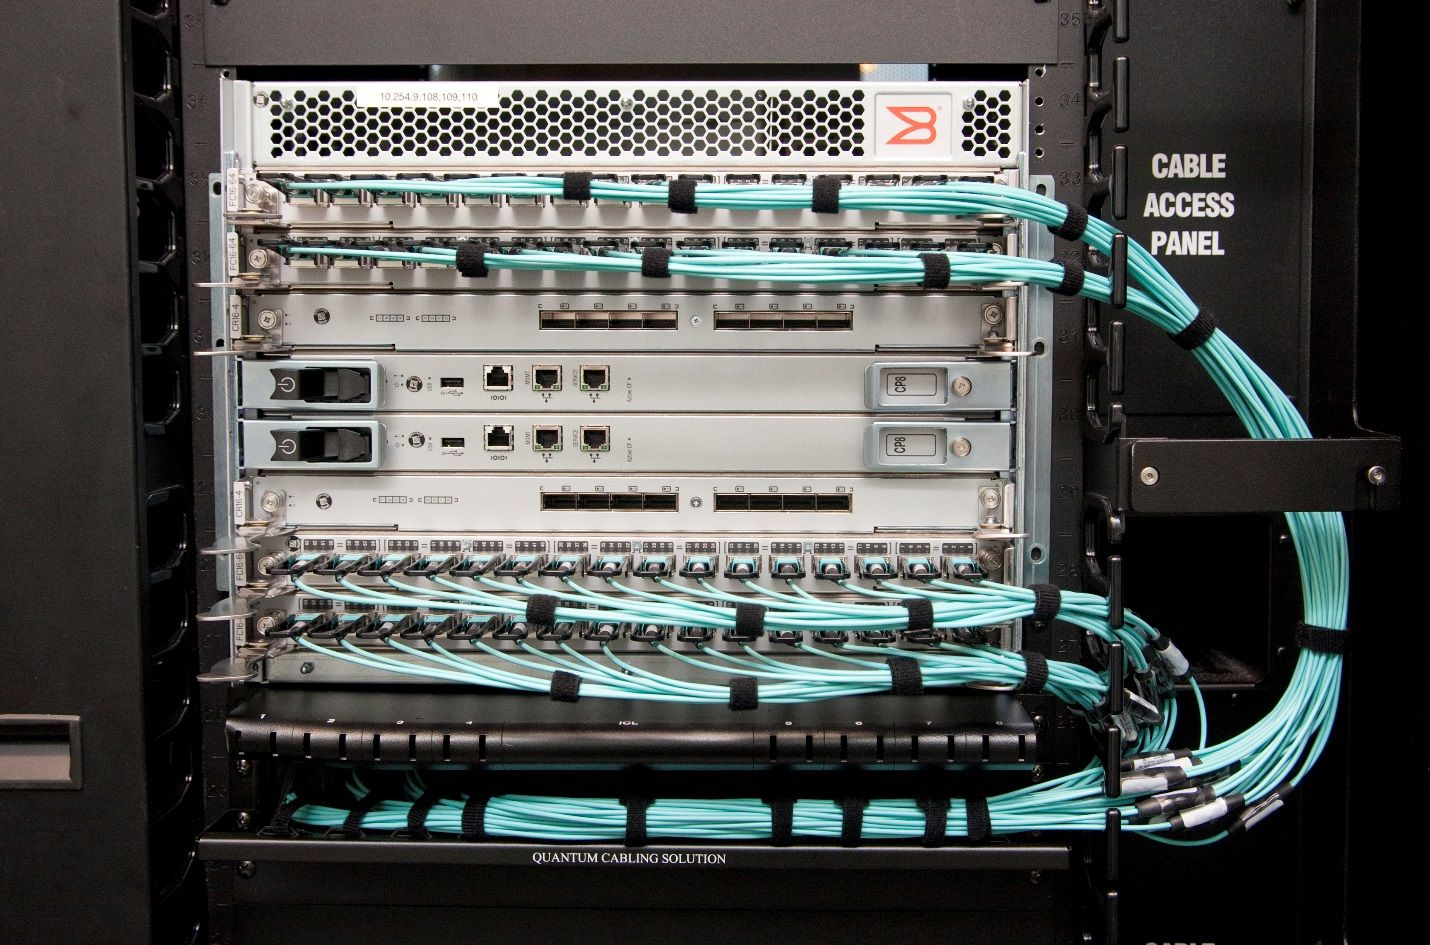 Dcx 8510 Cabling Installation Front Side Director Ports